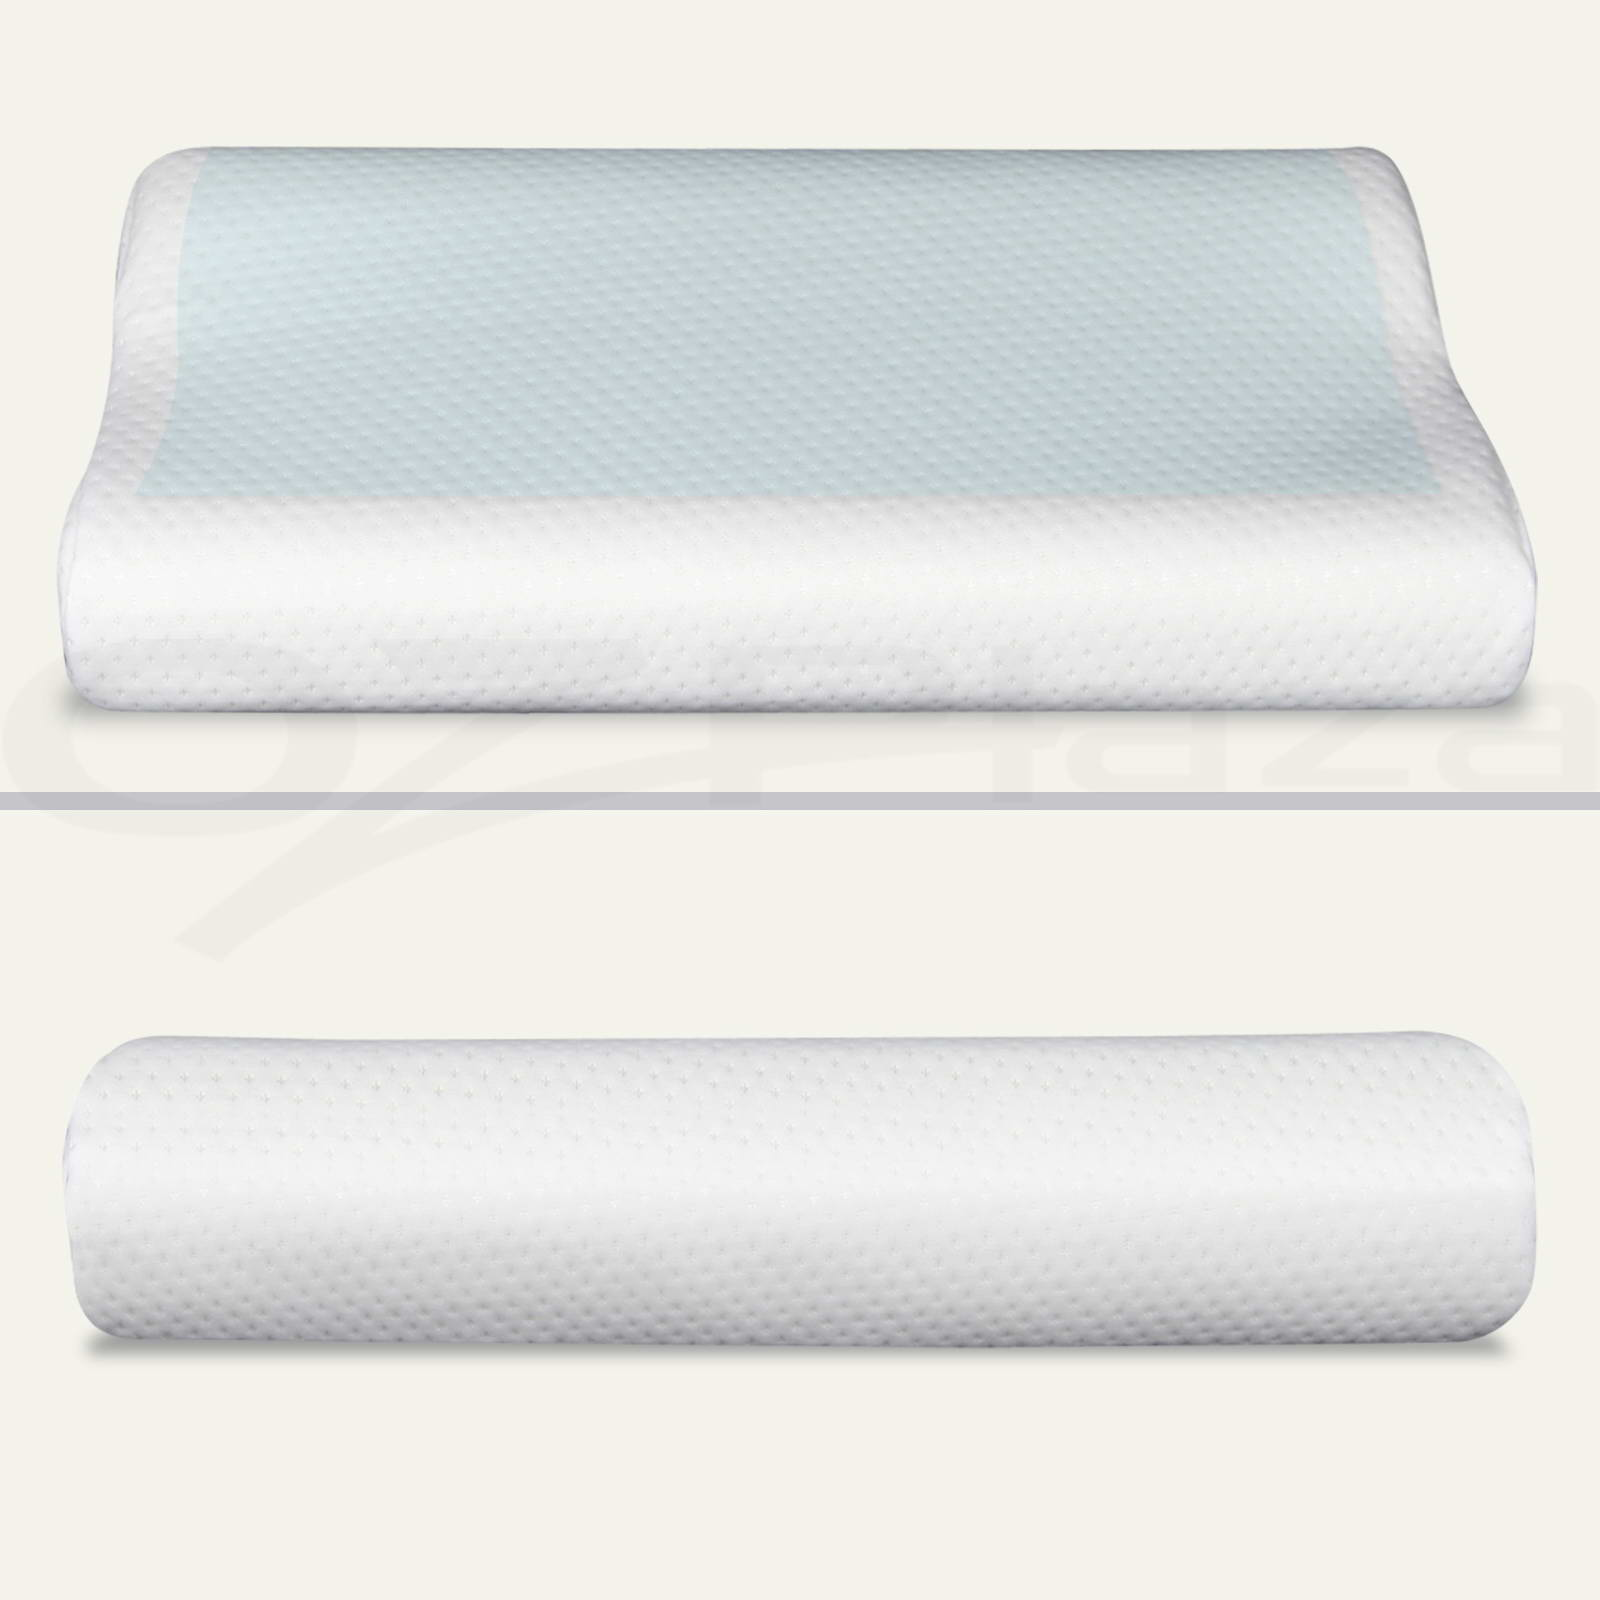 Spa Supreme Traditional Memory Foam Pillow : 2x Supreme High Density Memory Foam Pillow Contour Cool Gel Home Hotel Top Cover eBay